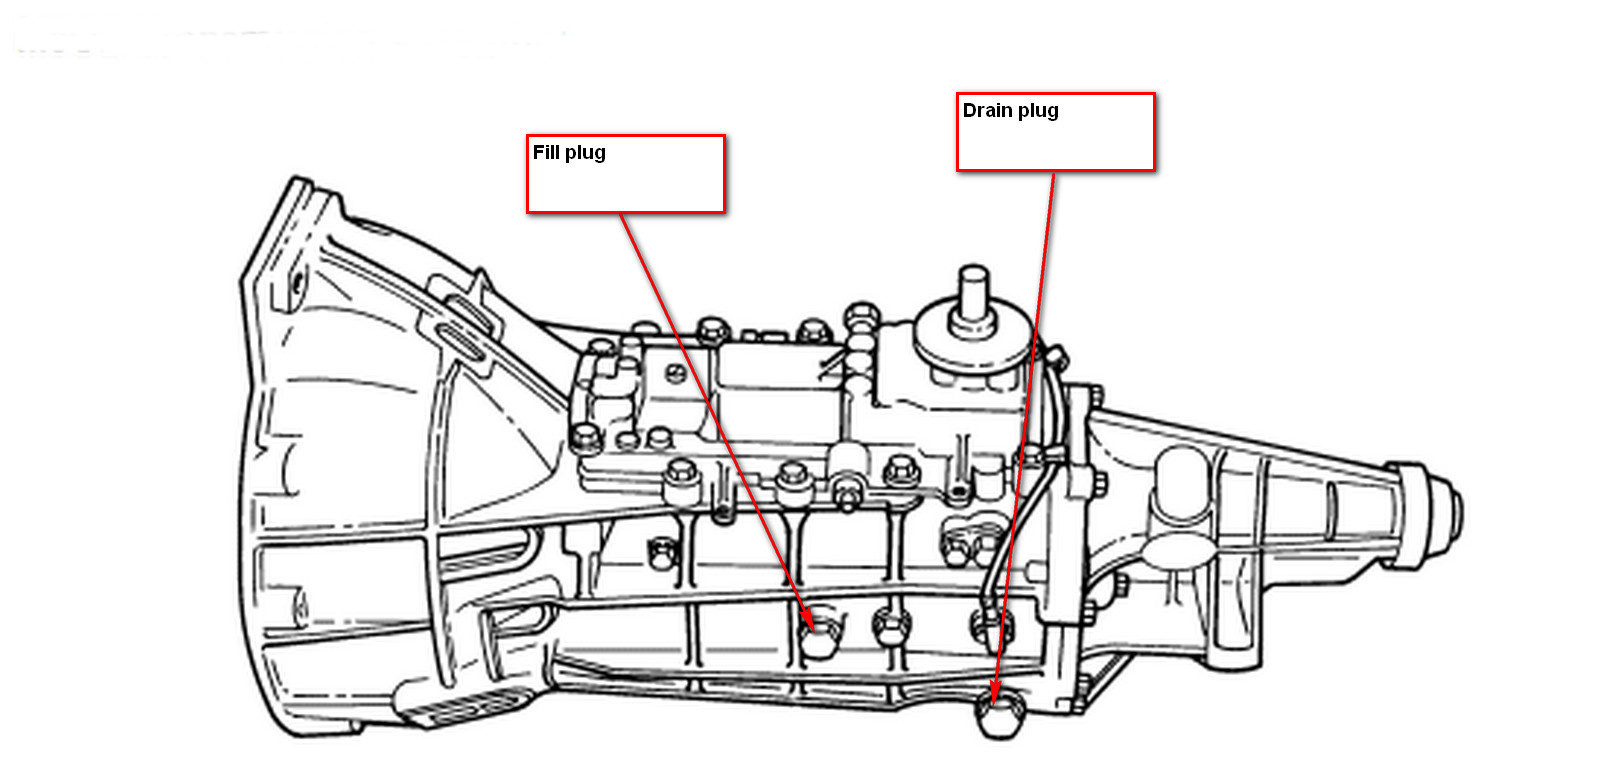 Ford Explorer Automatic Transmission Manual